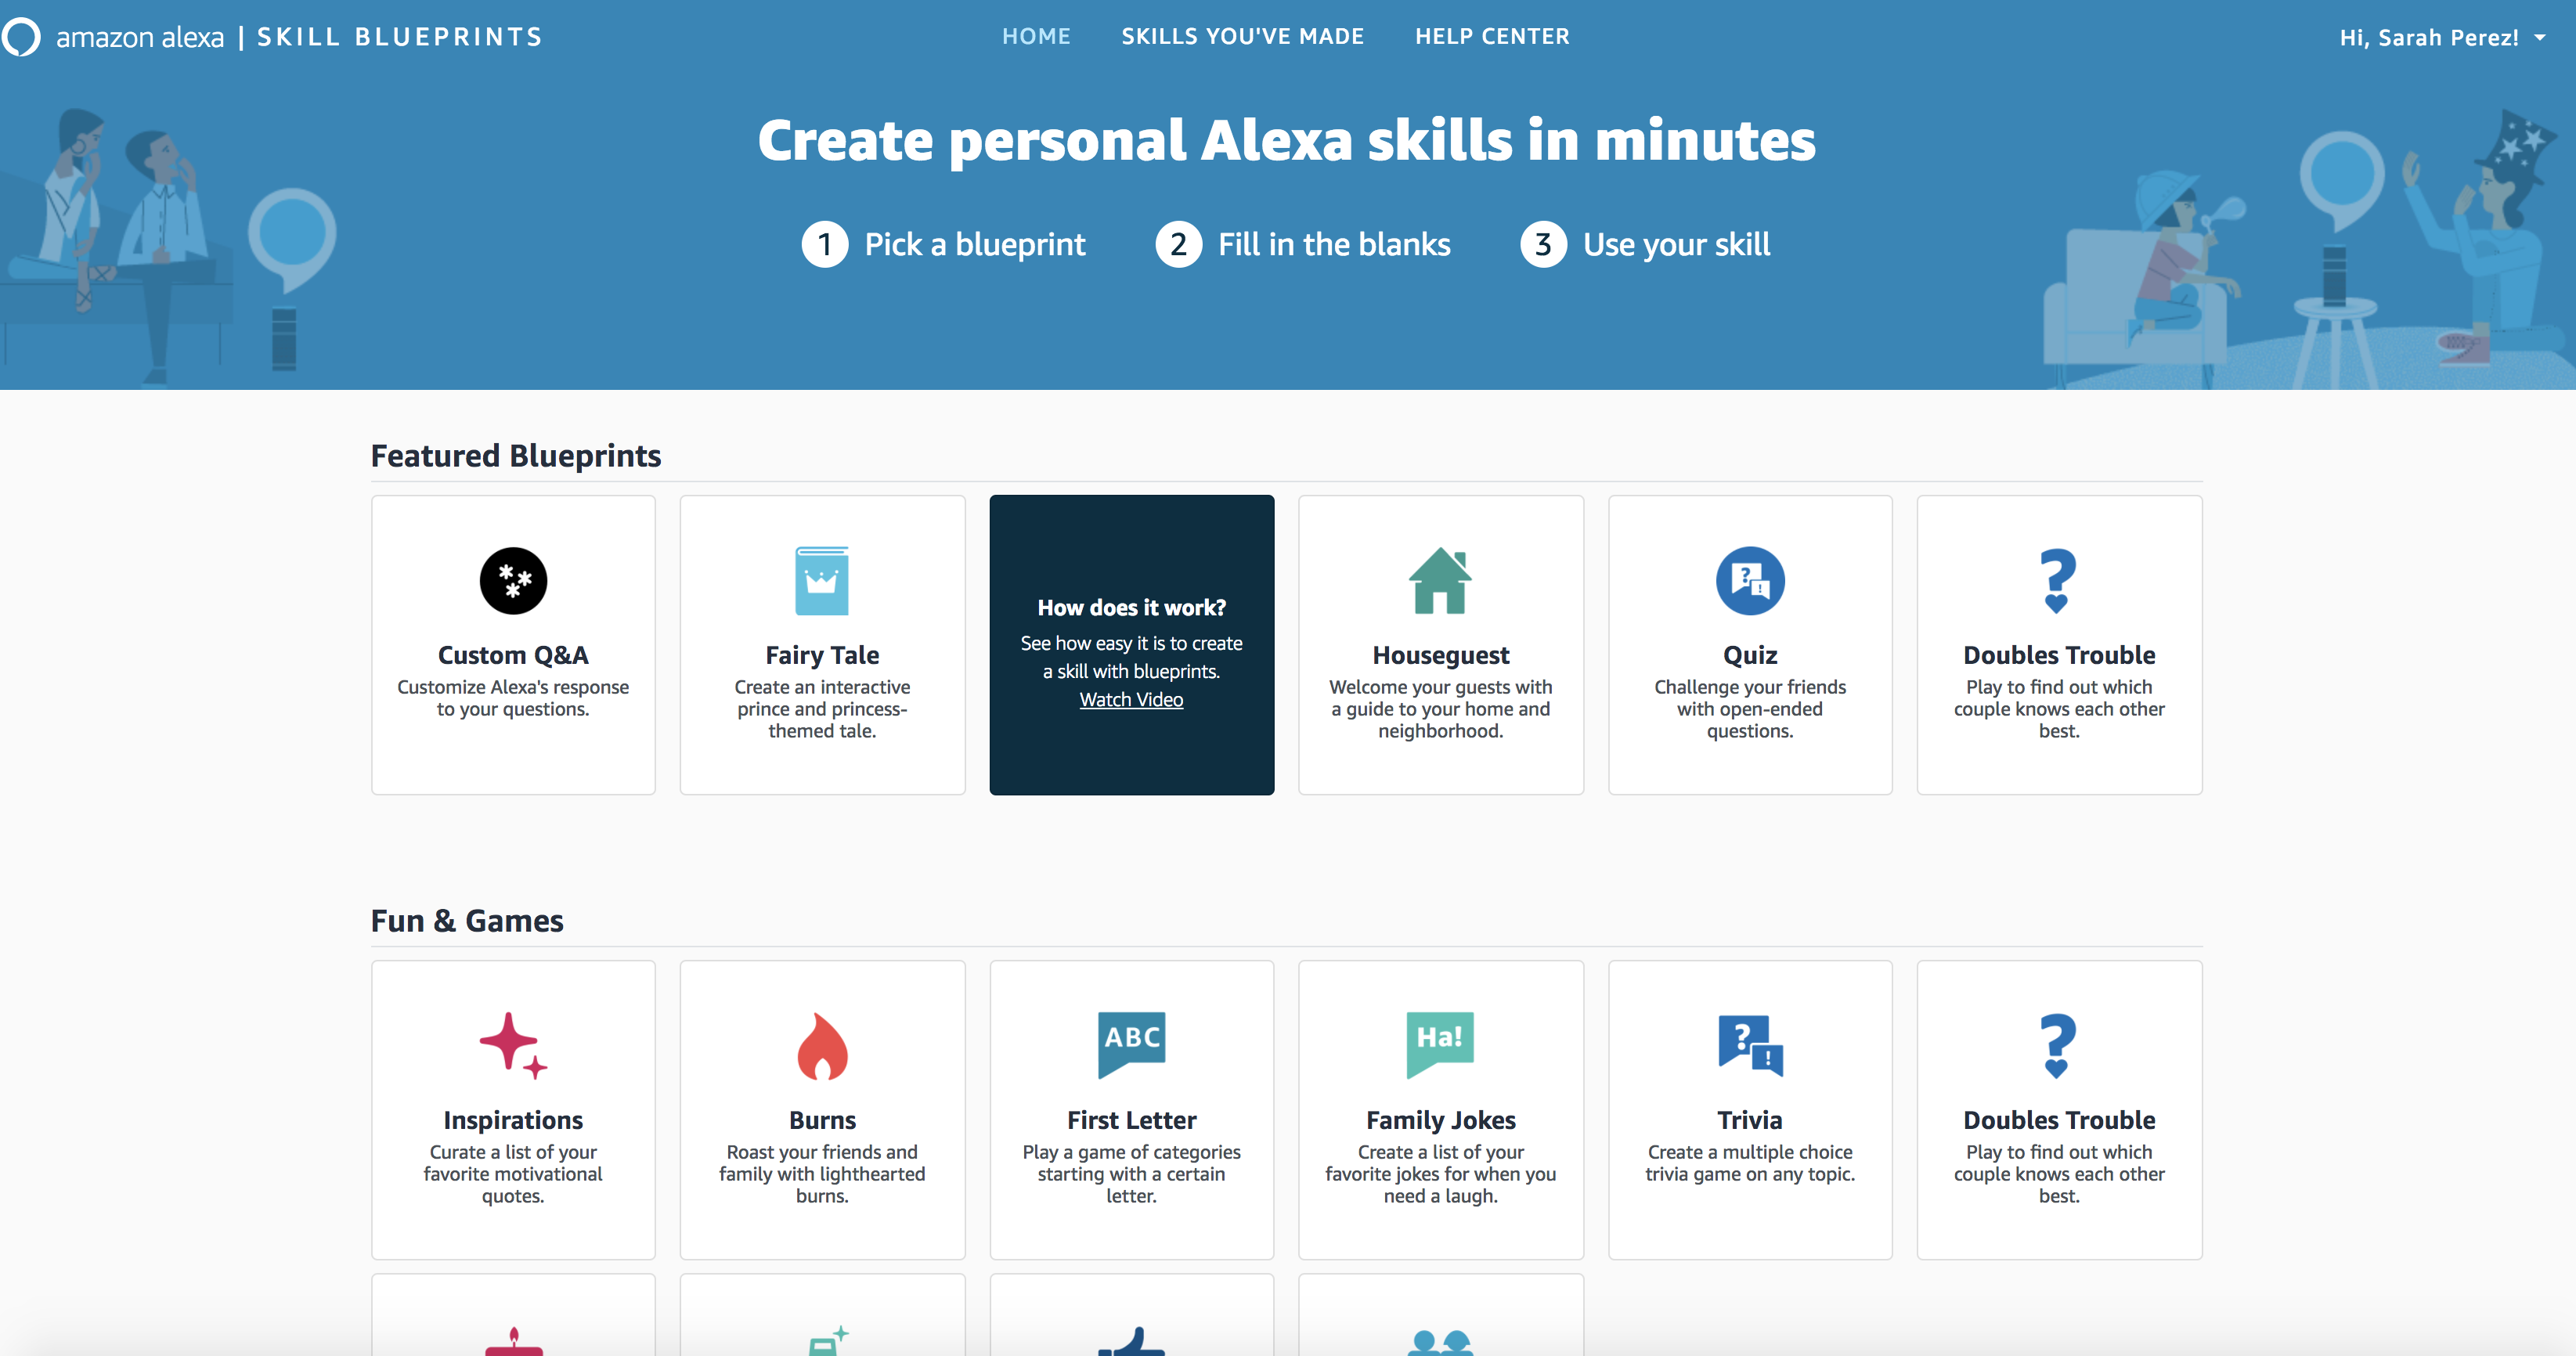 Create your own custom Alexa skill with Blueprints, burn a family member